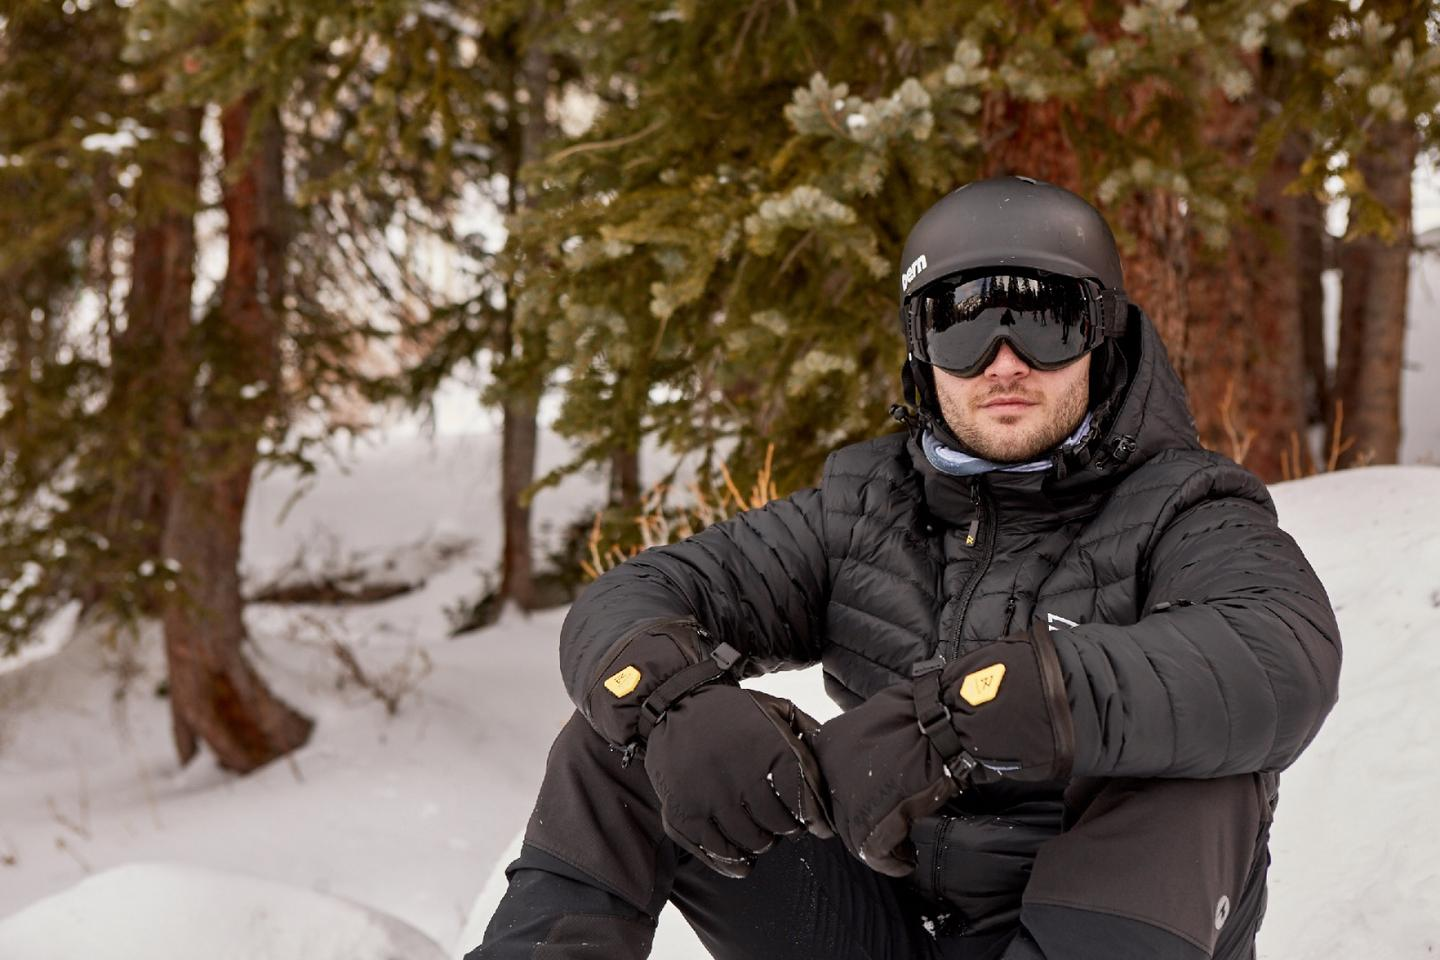 The glove or mitten can be battery-warmed for up to 6.5 hours